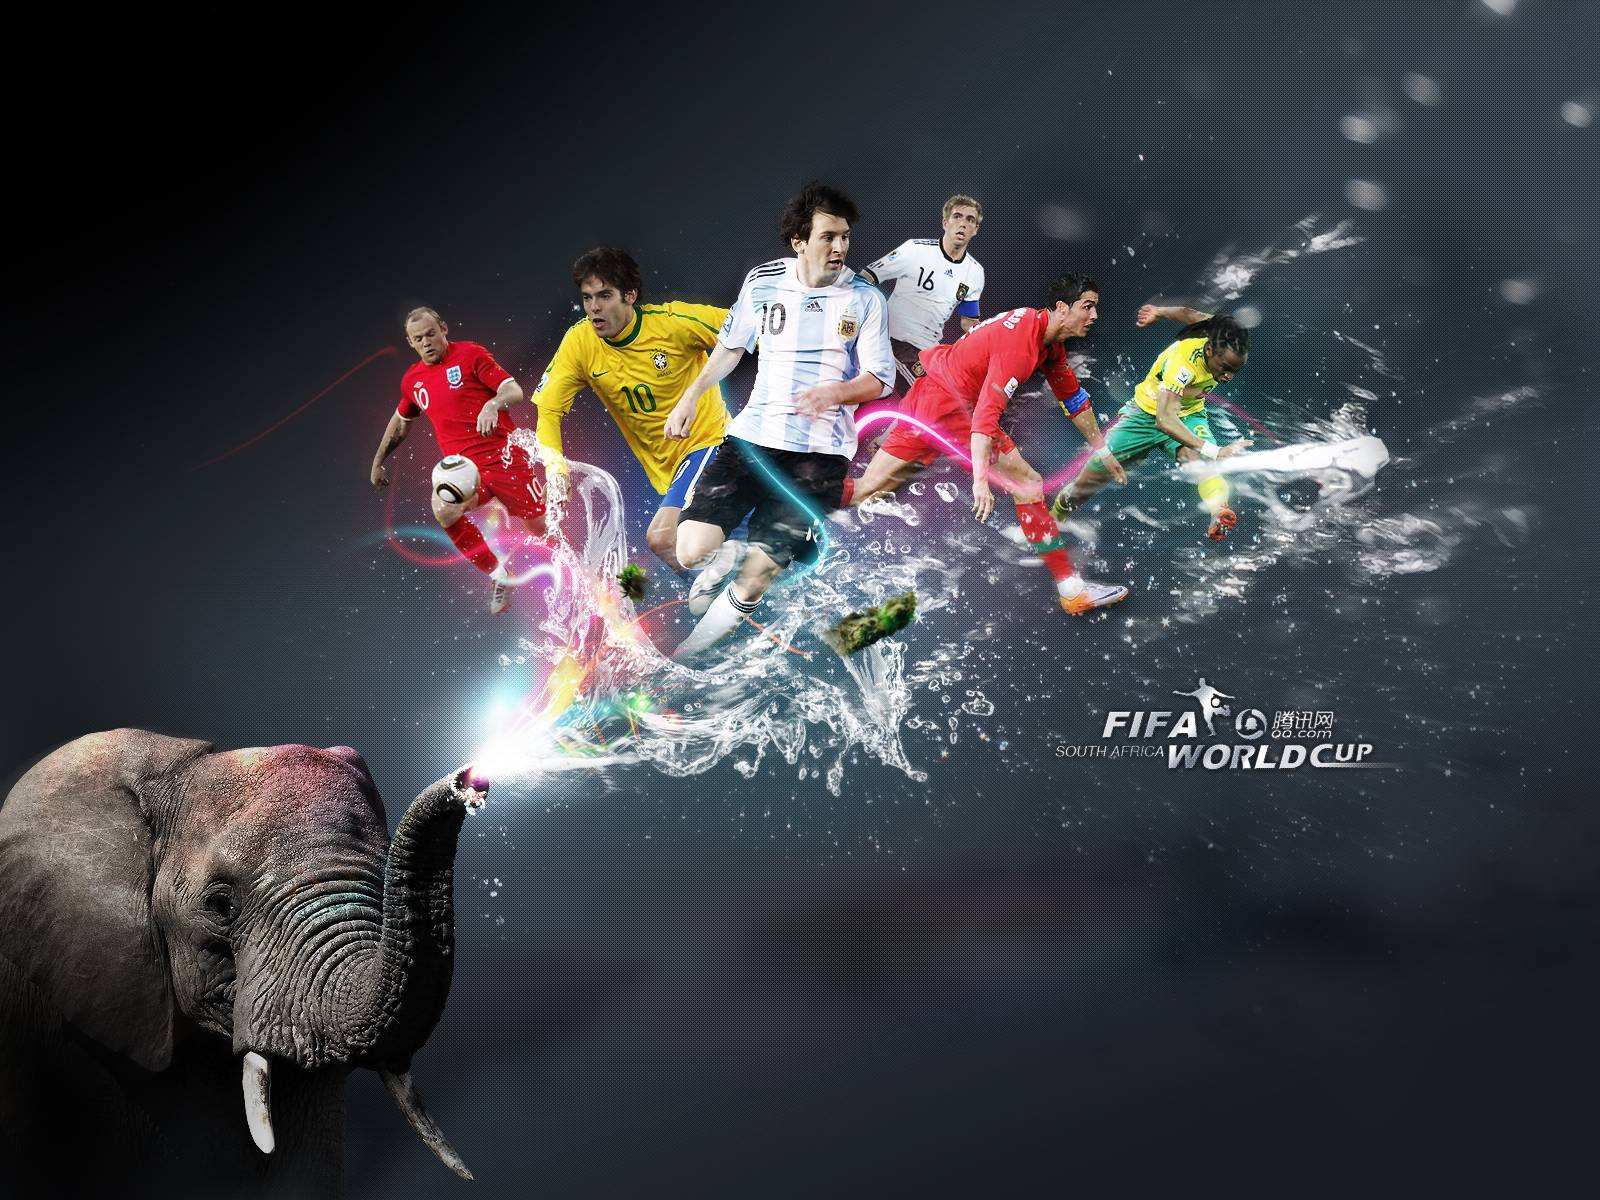 FIFA Wallpapers - Wallpaper Cave